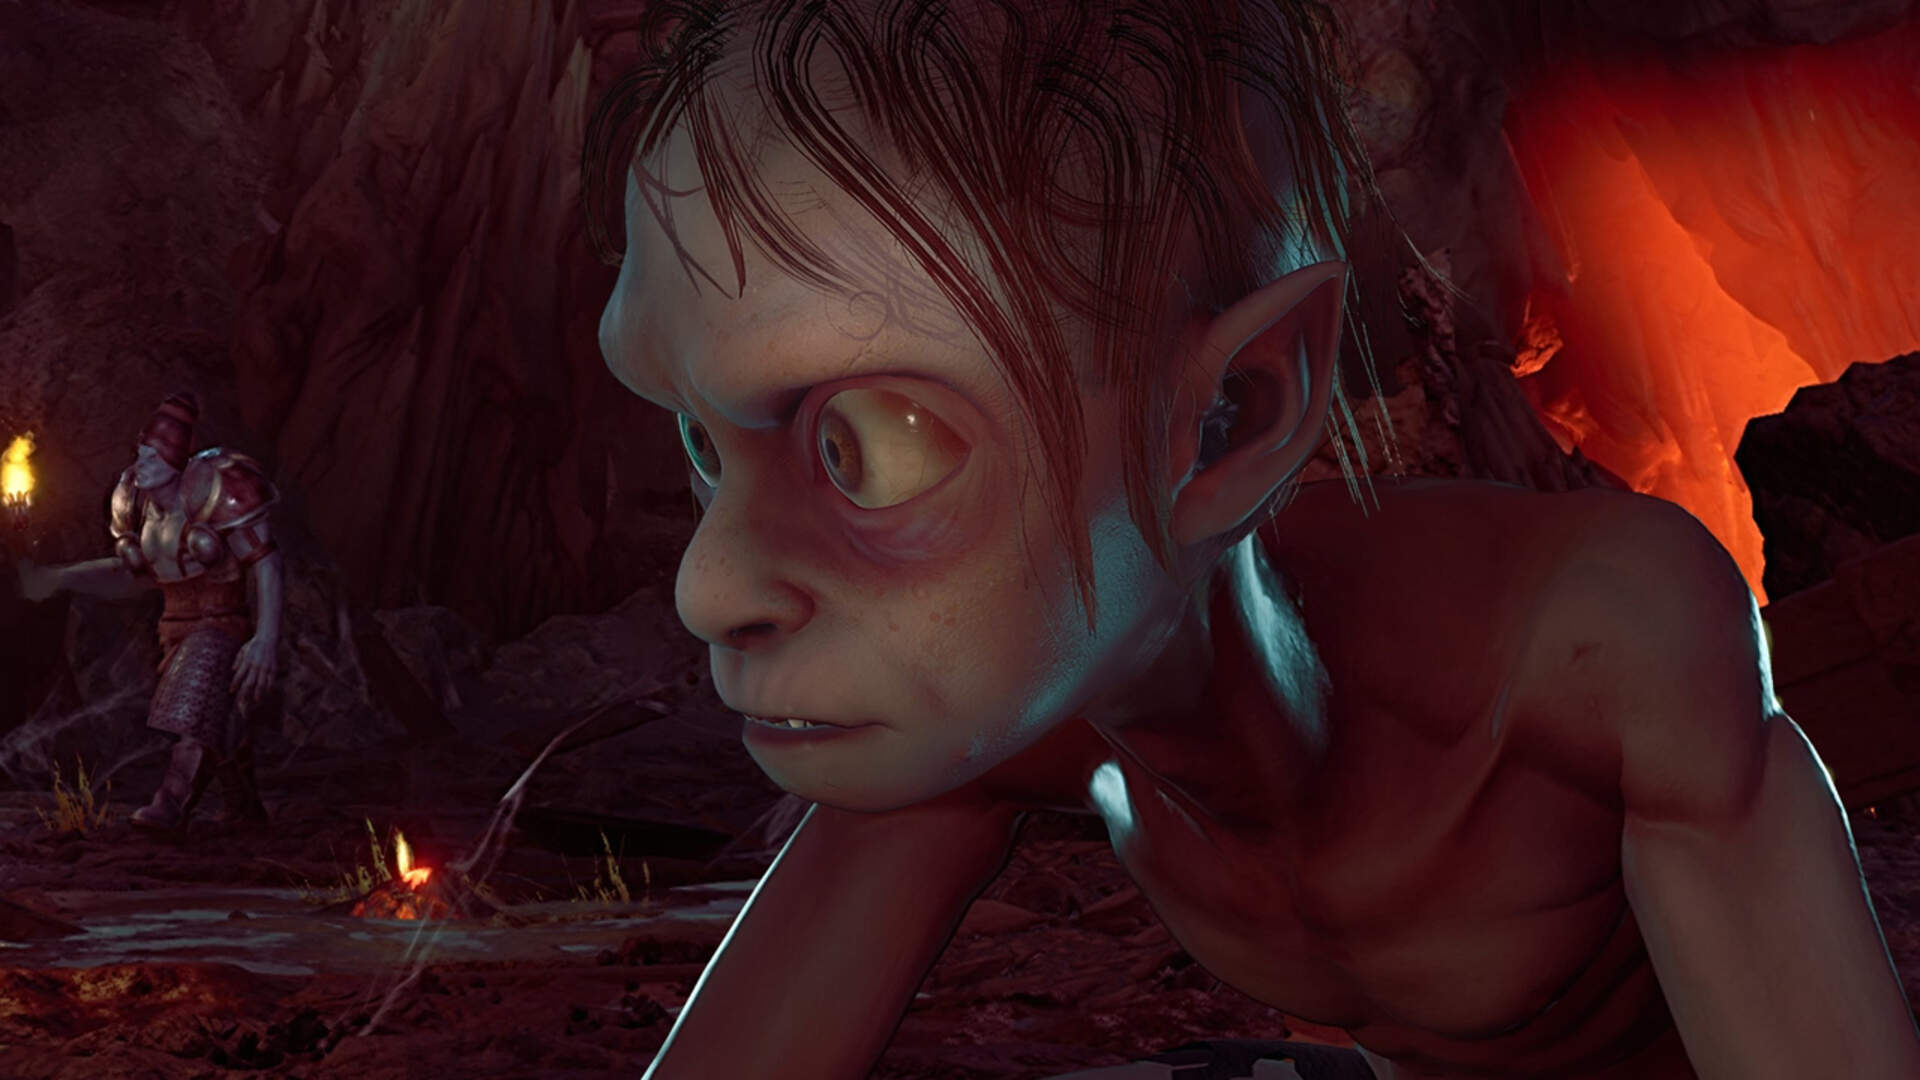 Daedalic's Version of Gollum is Deliberately Less Creepy Than in The Lord of the Rings Films